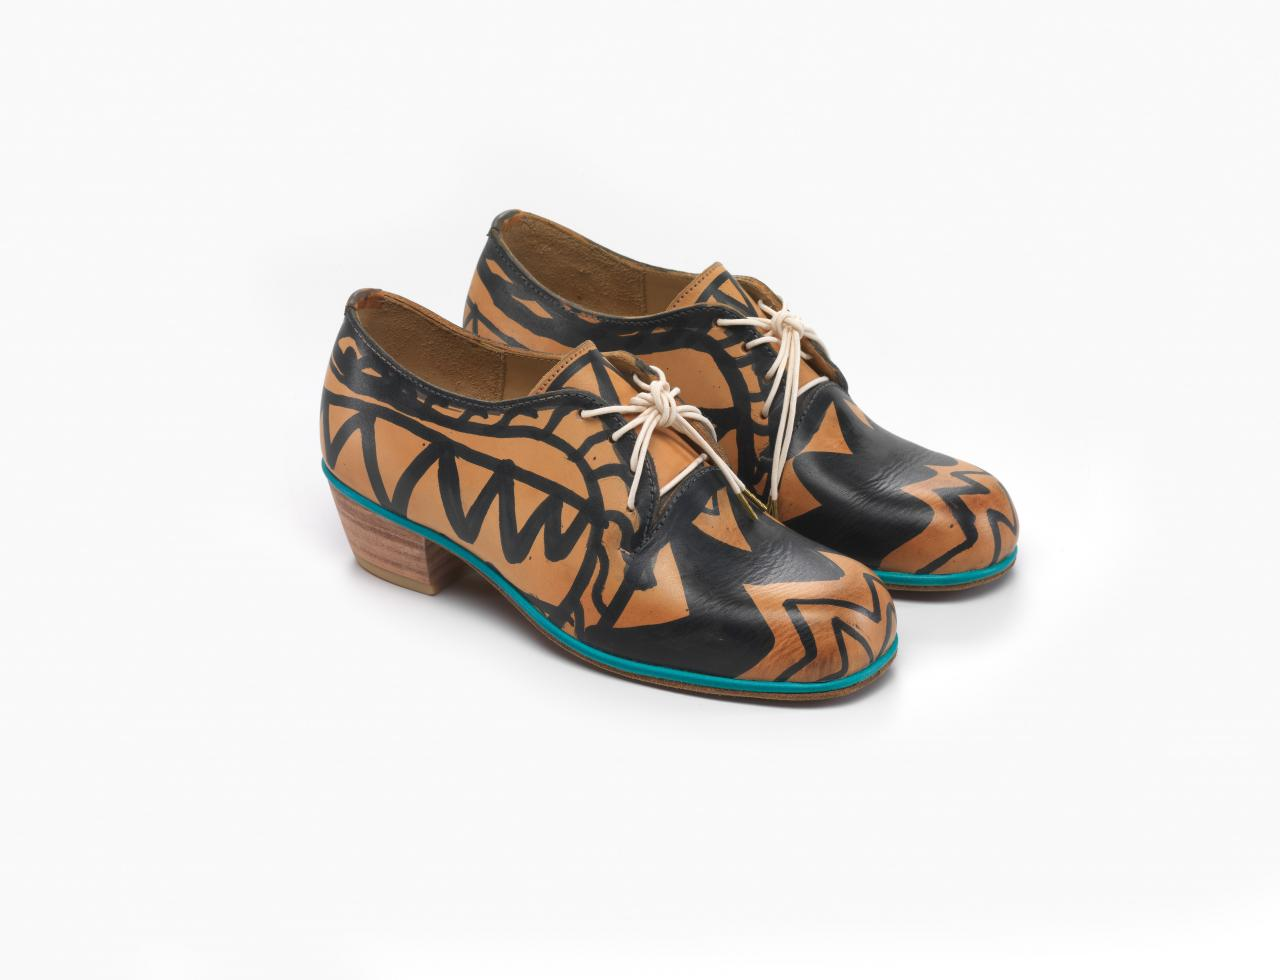 Painted derby shoes